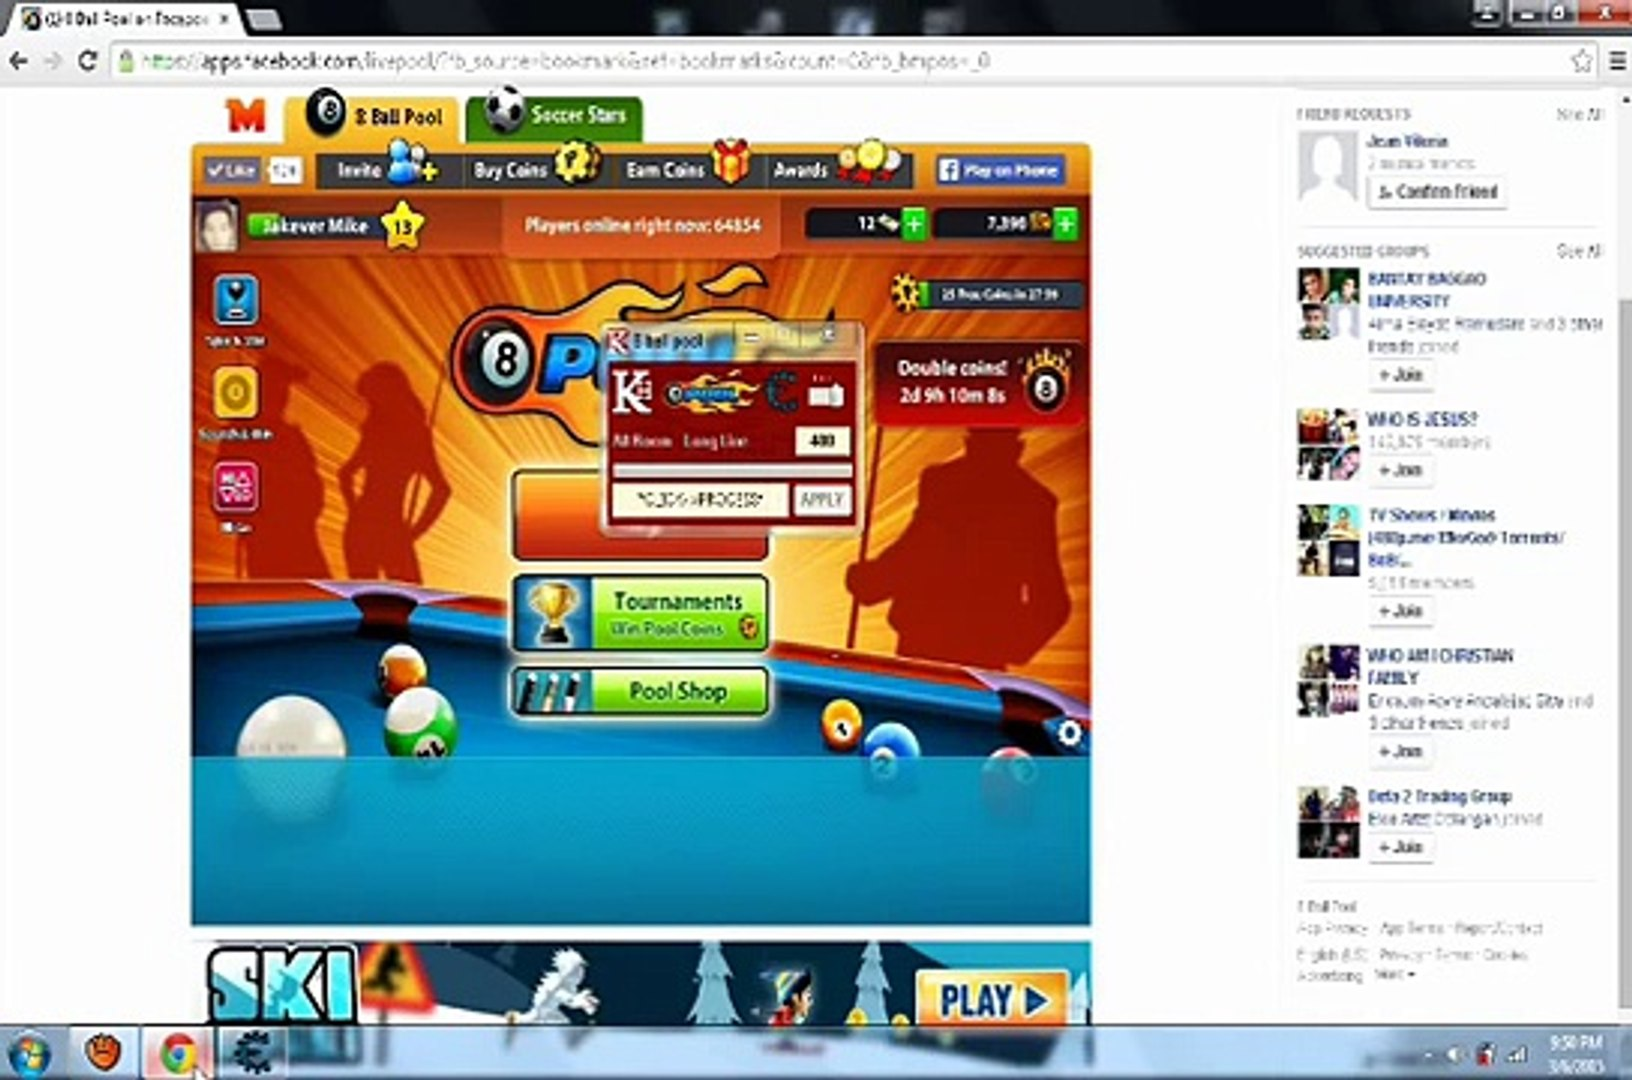 8 Ball Pool Long Line Hack - Using Cheat Engine 6 4 -2015